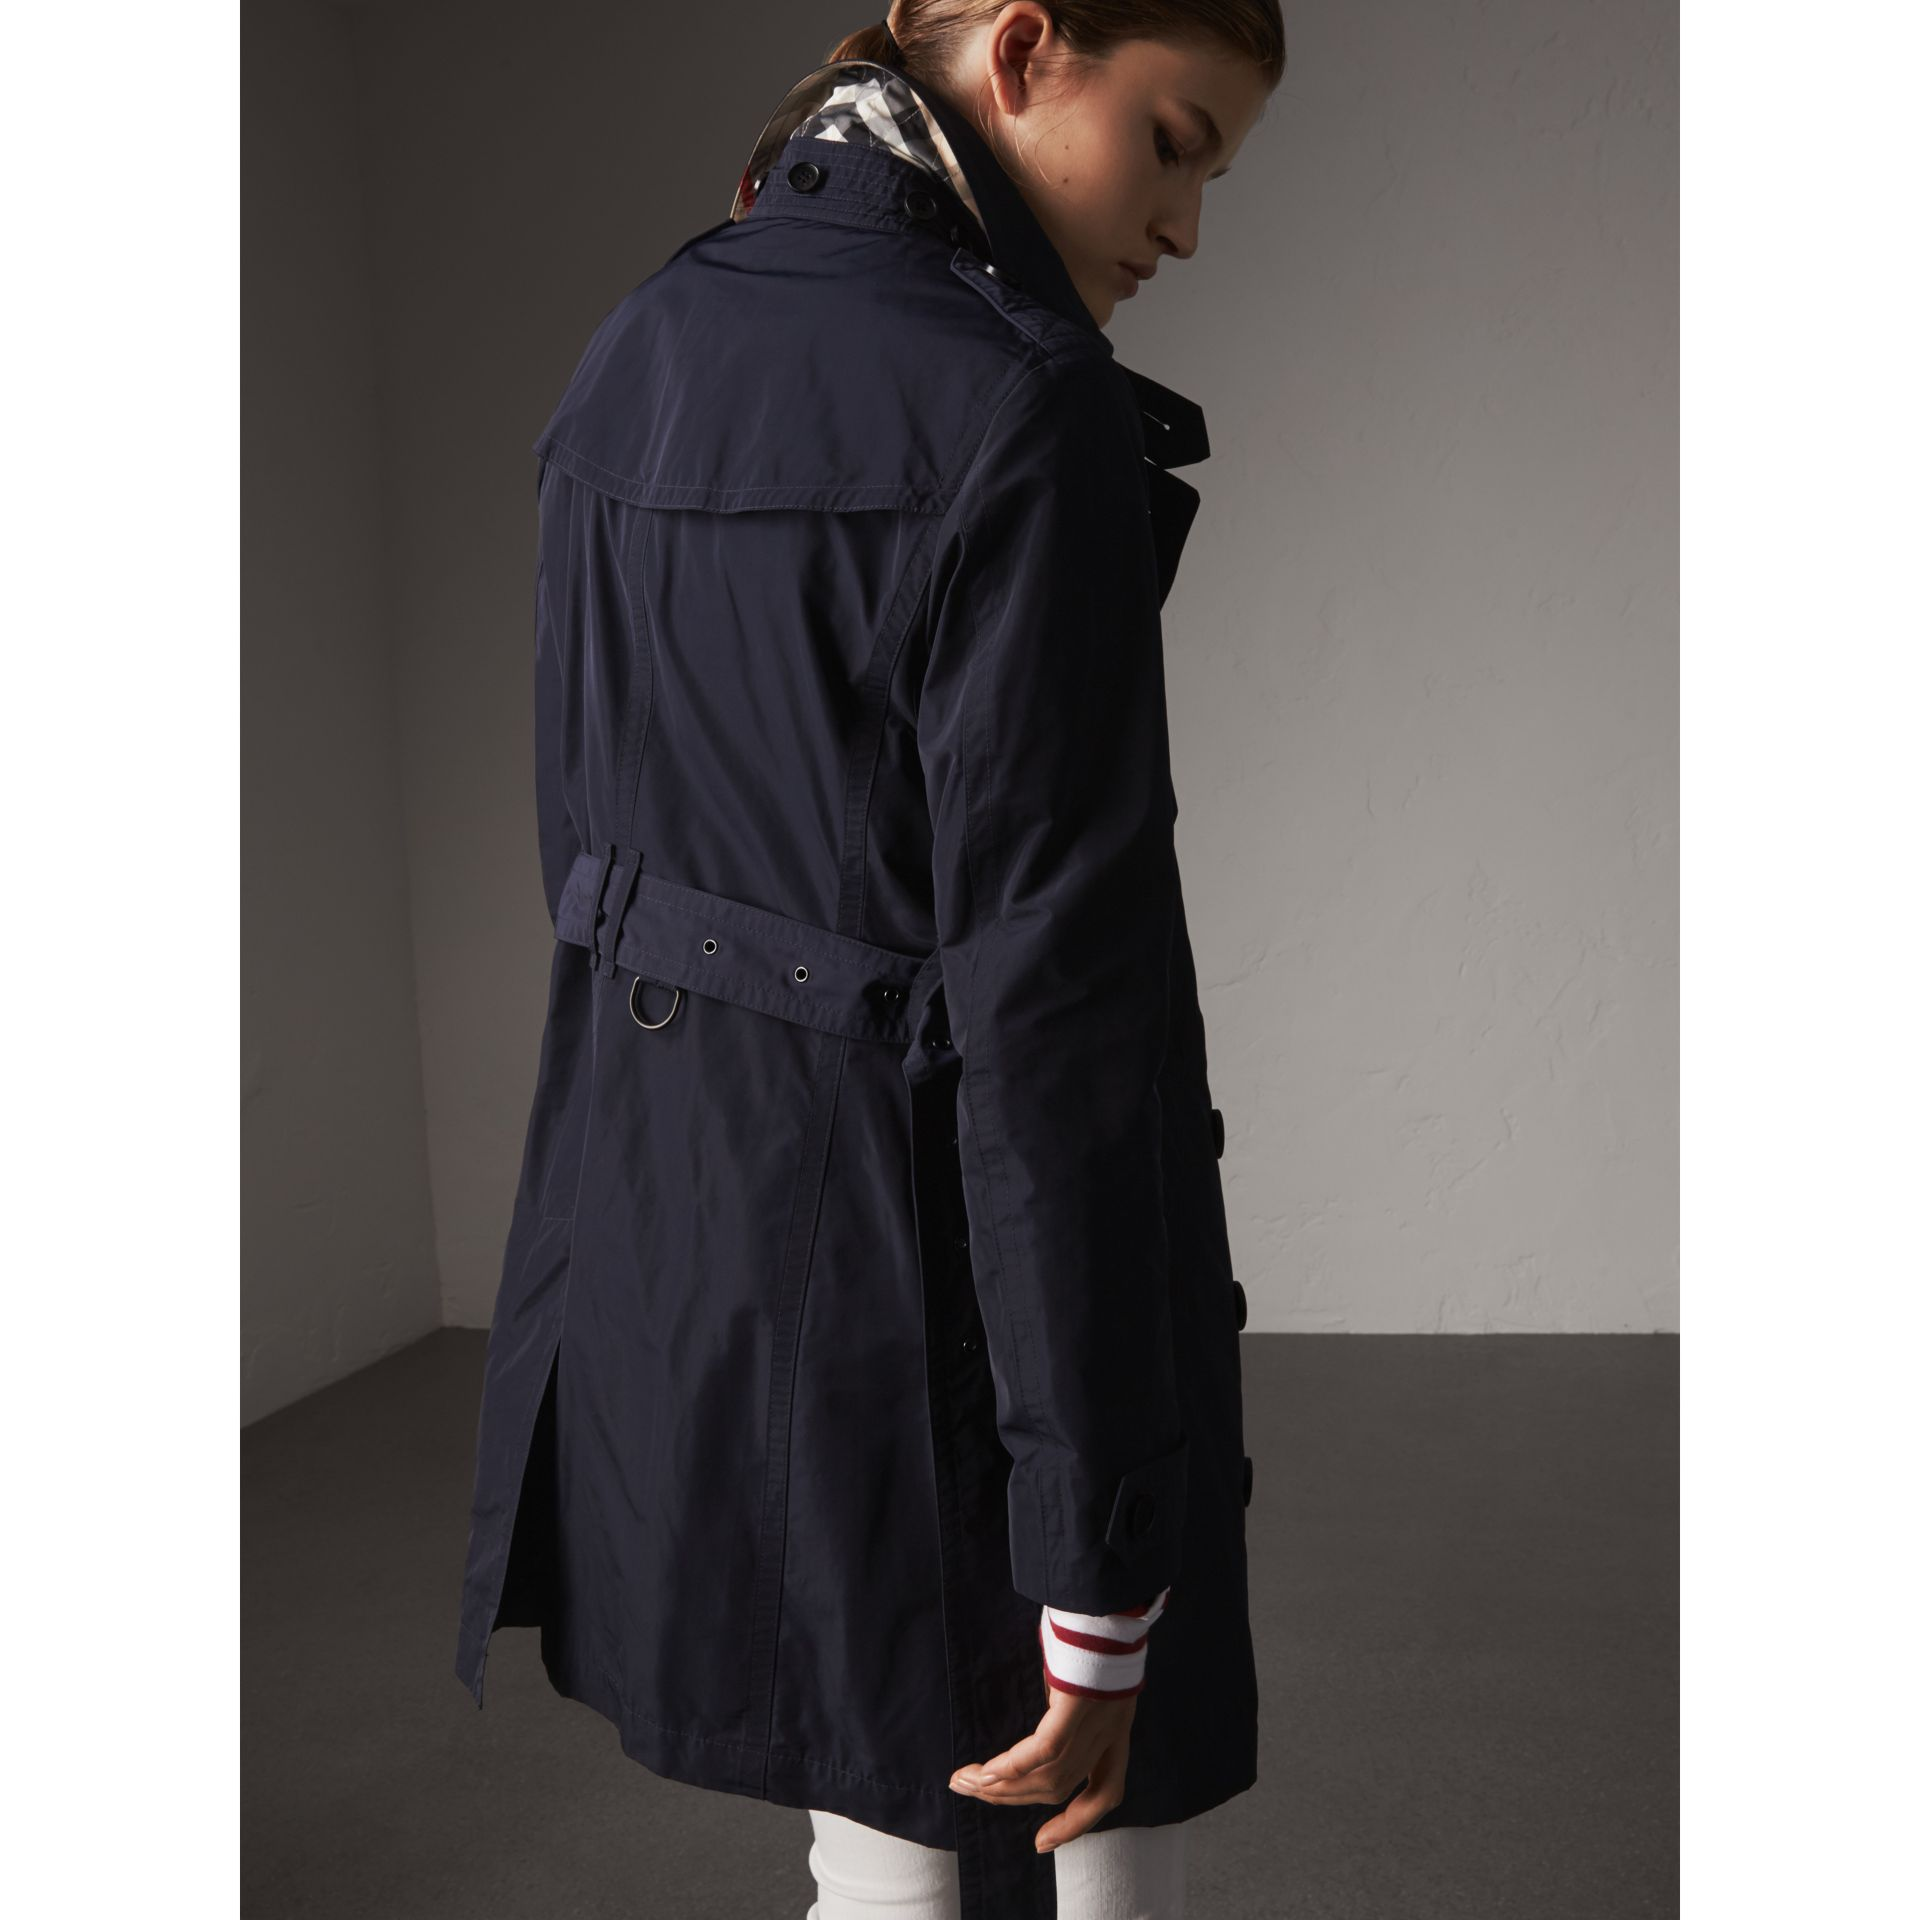 Taffeta Trench Coat with Detachable Hood in Navy - Women | Burberry - gallery image 2